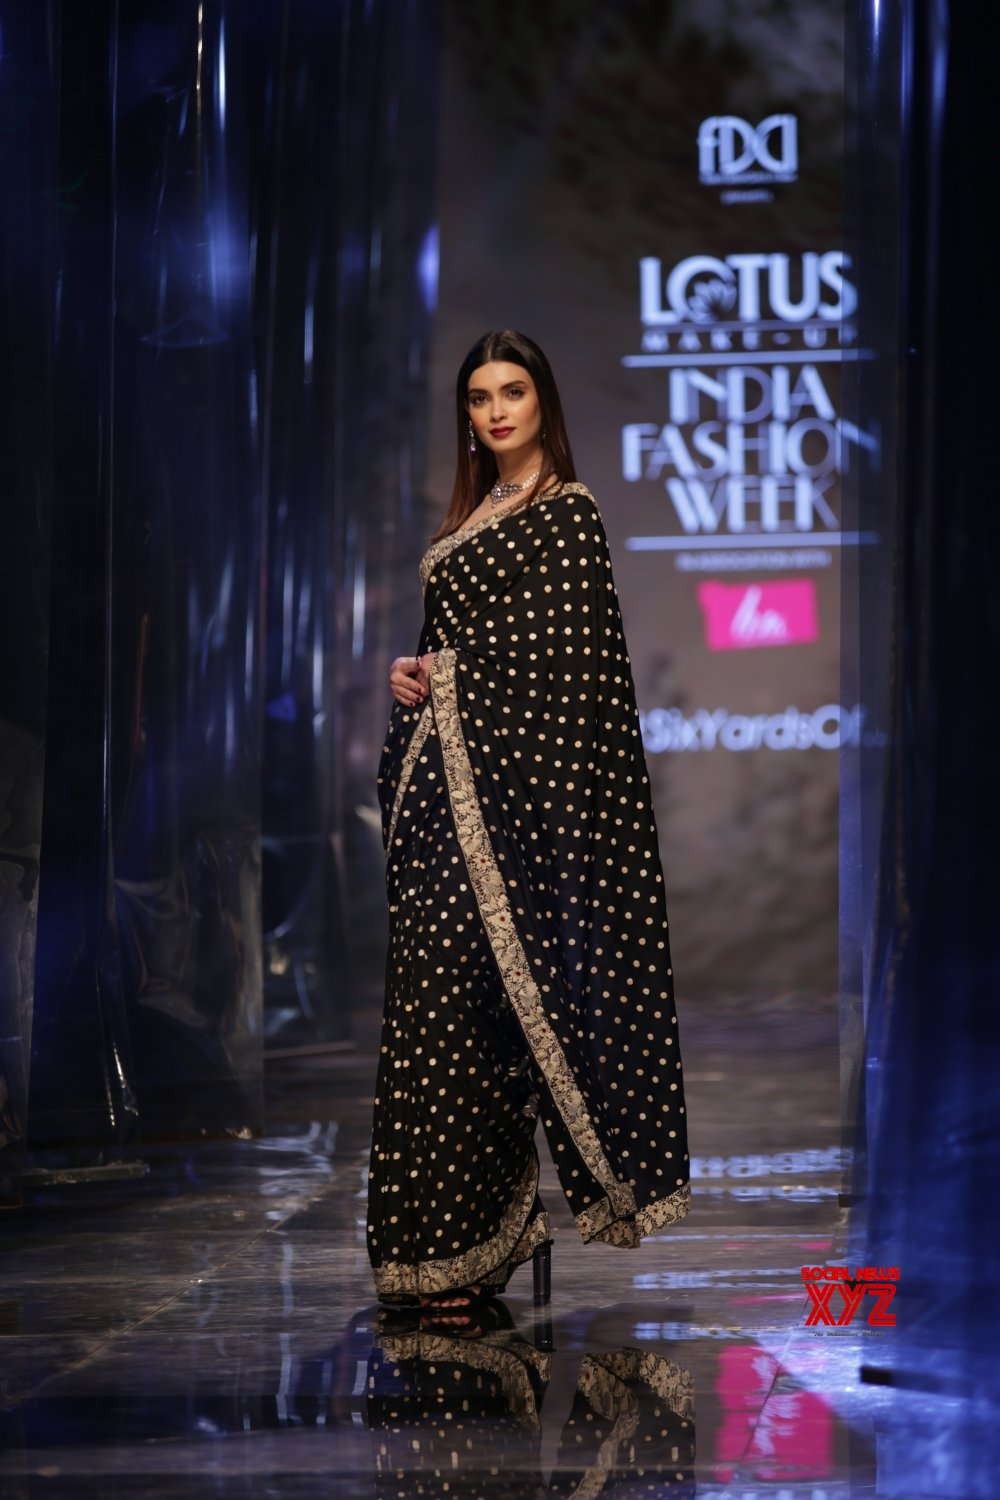 ew Delhi: FDCI Lotus India Fashion Week Grand Finale - Aditi Rao Hydari and Diana Penty #Gallery